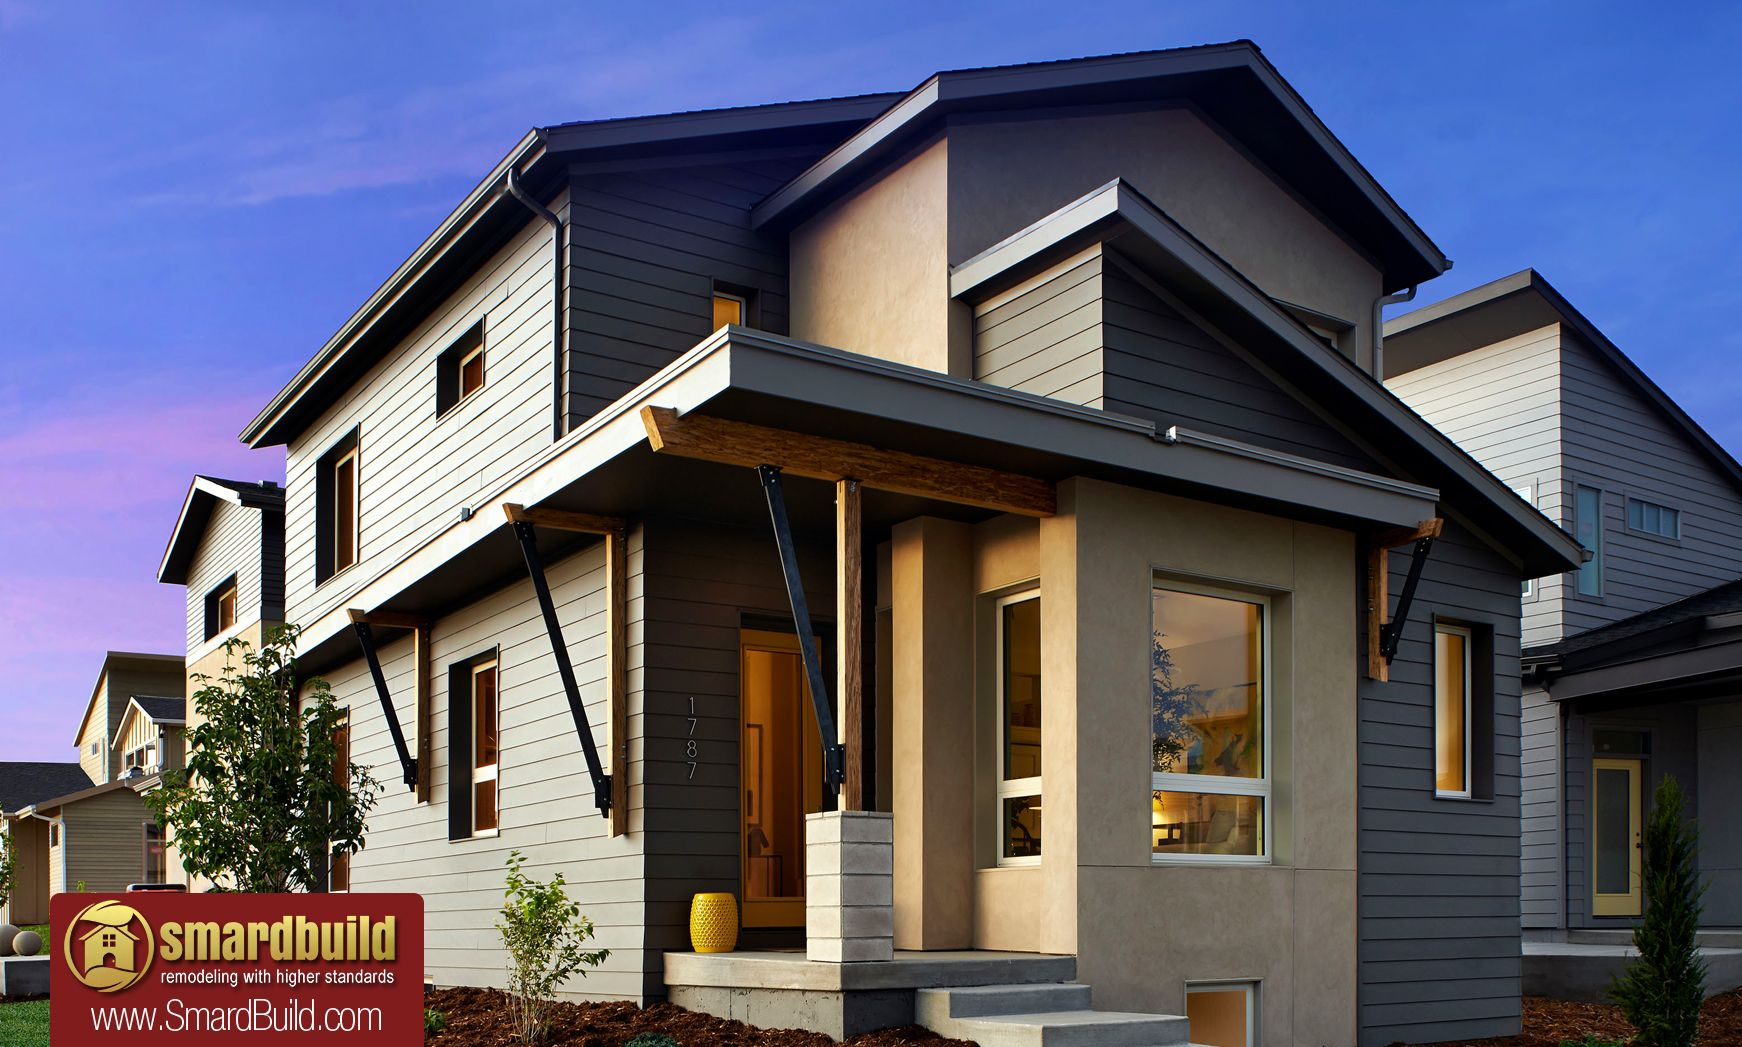 Siding Trends Thatu0027ll Influence Homes In 2017   Http://www.